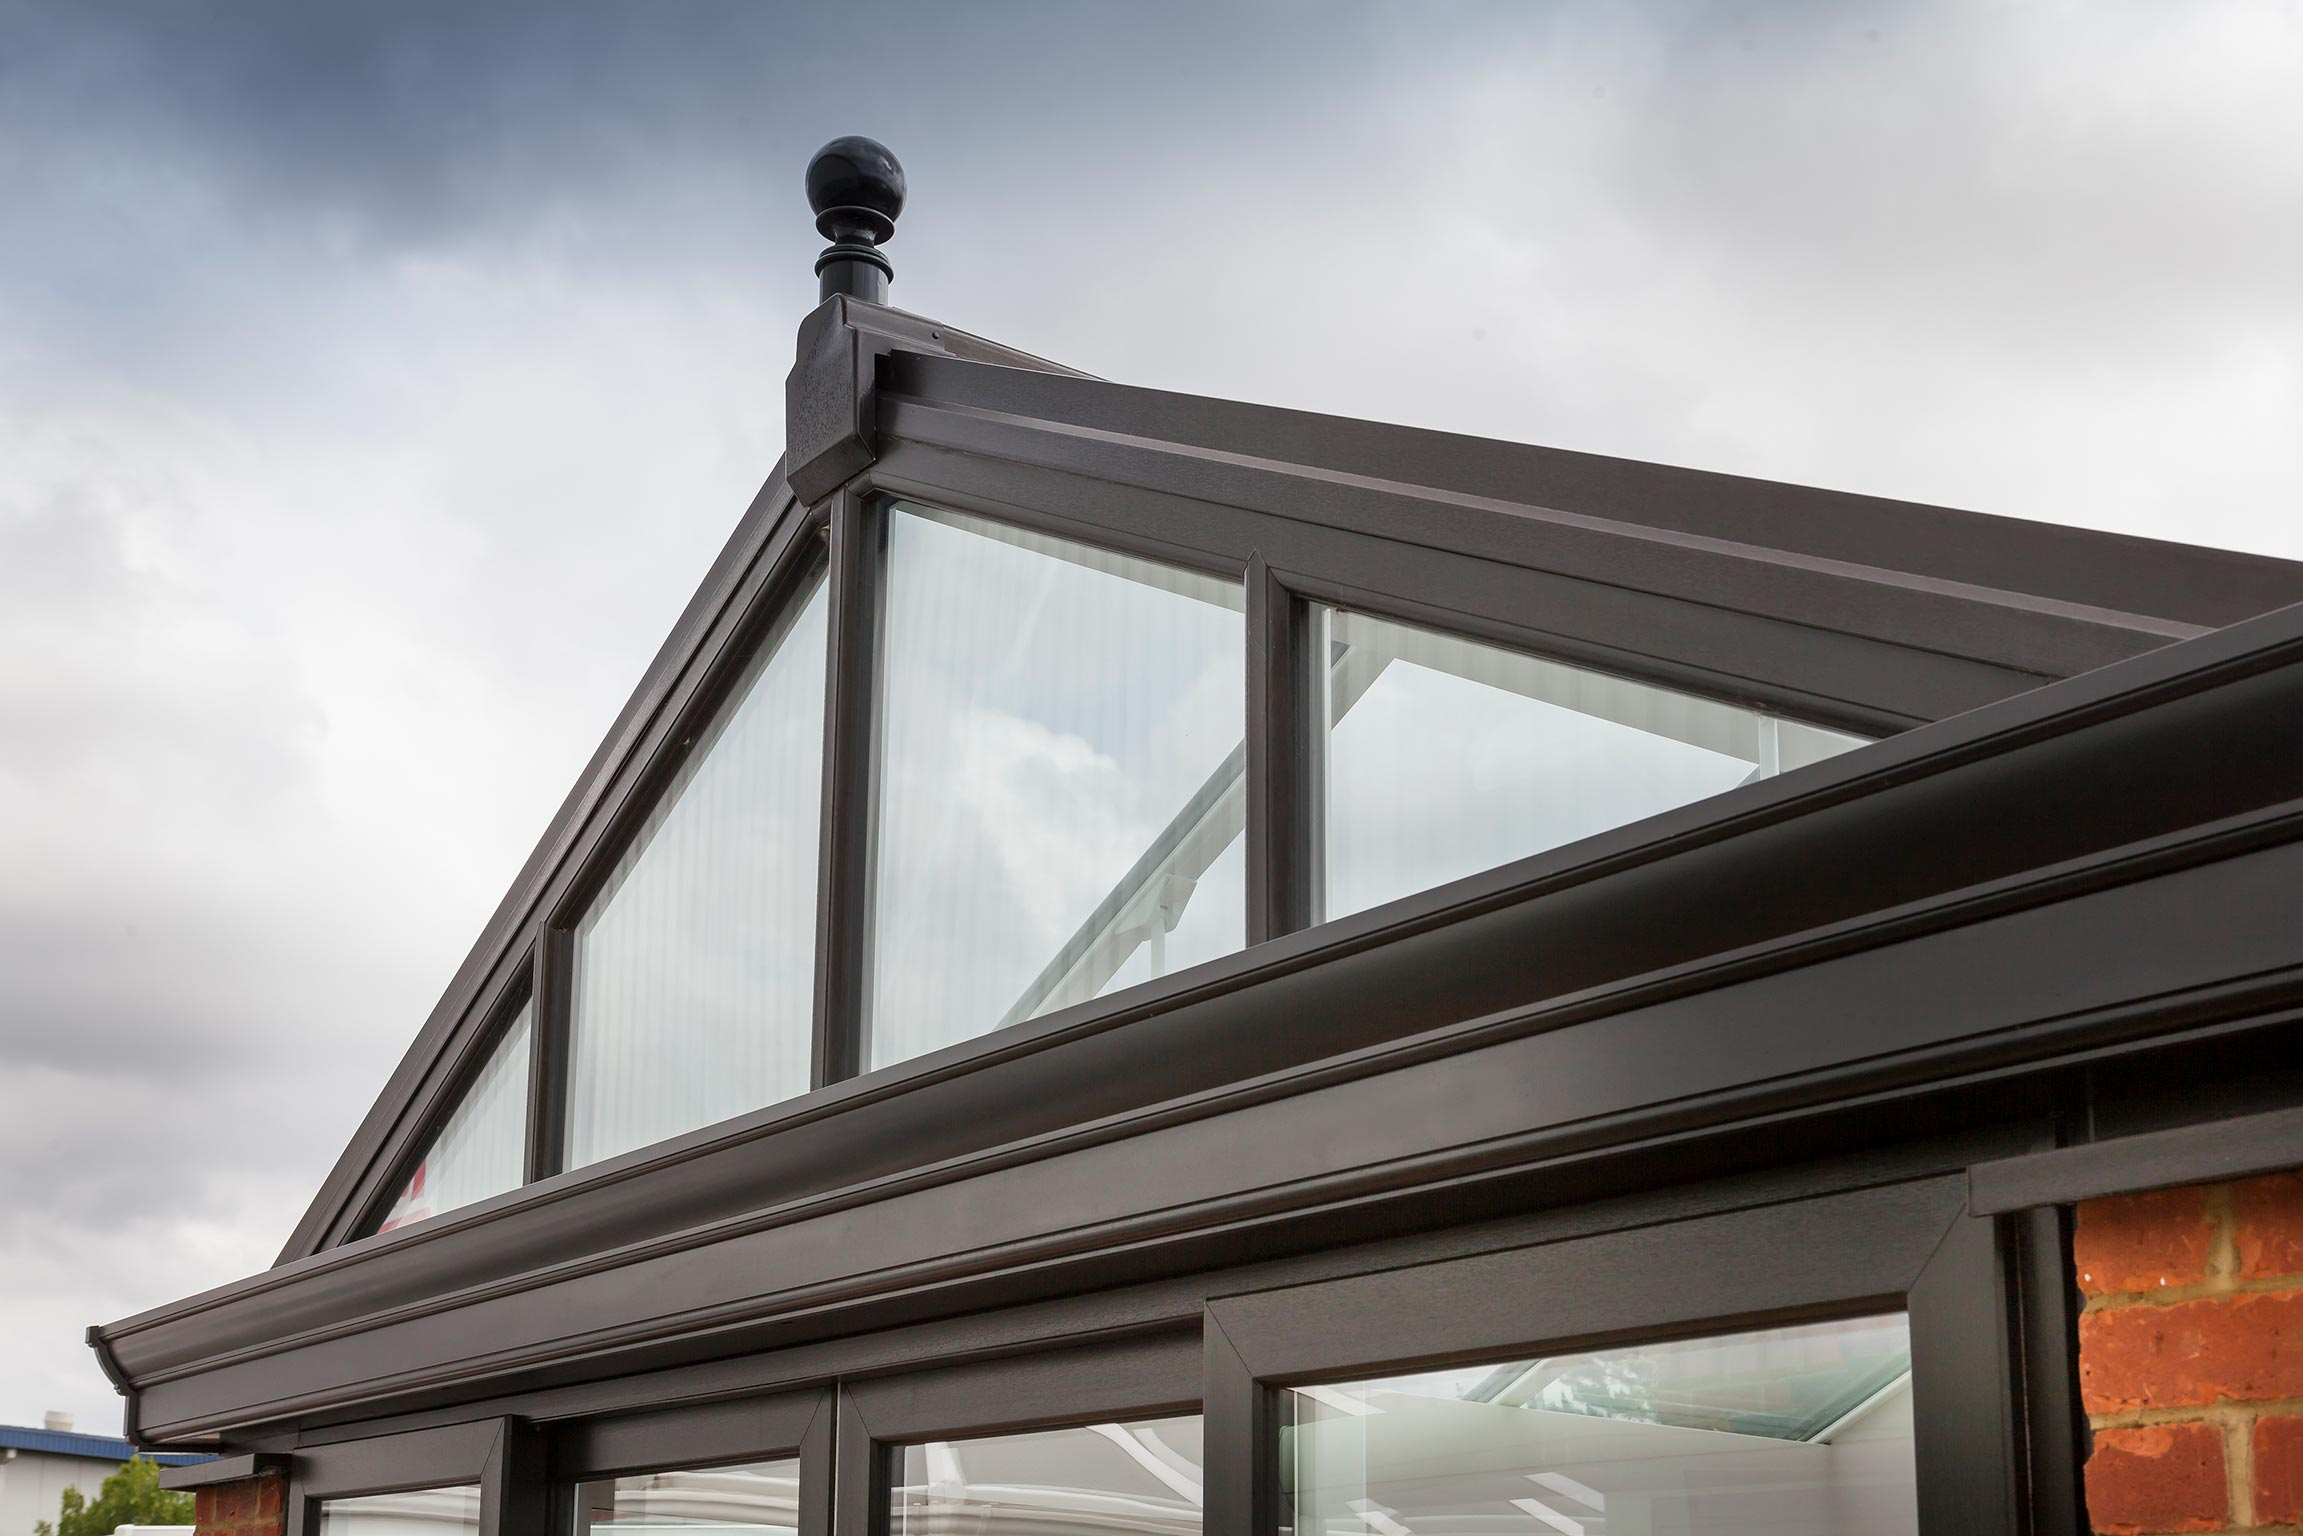 'Mixed fortunes' – conservatory market hits new low, but second-time replacements up